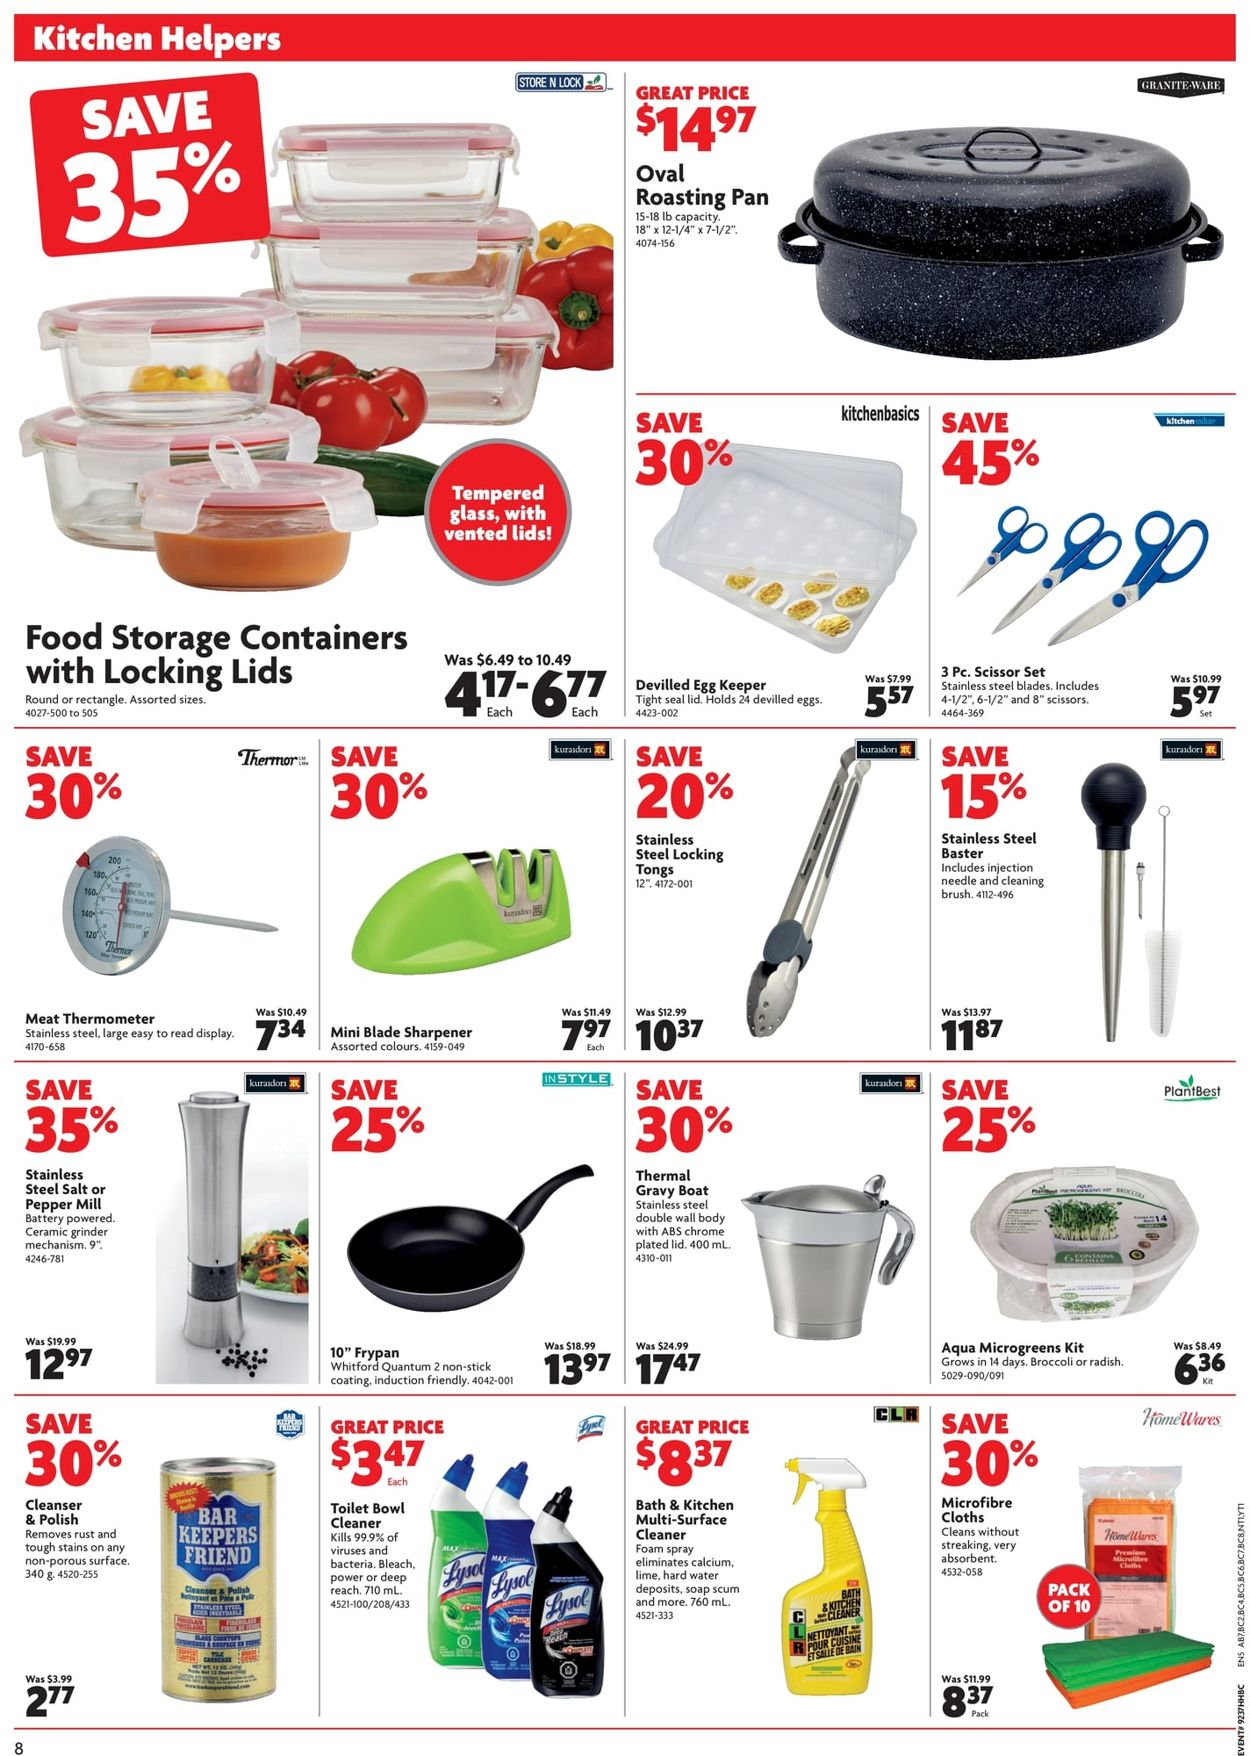 Home Hardware - Winter 2019 Savings Flyer - 11/14-11/20/2019 (Page 9)